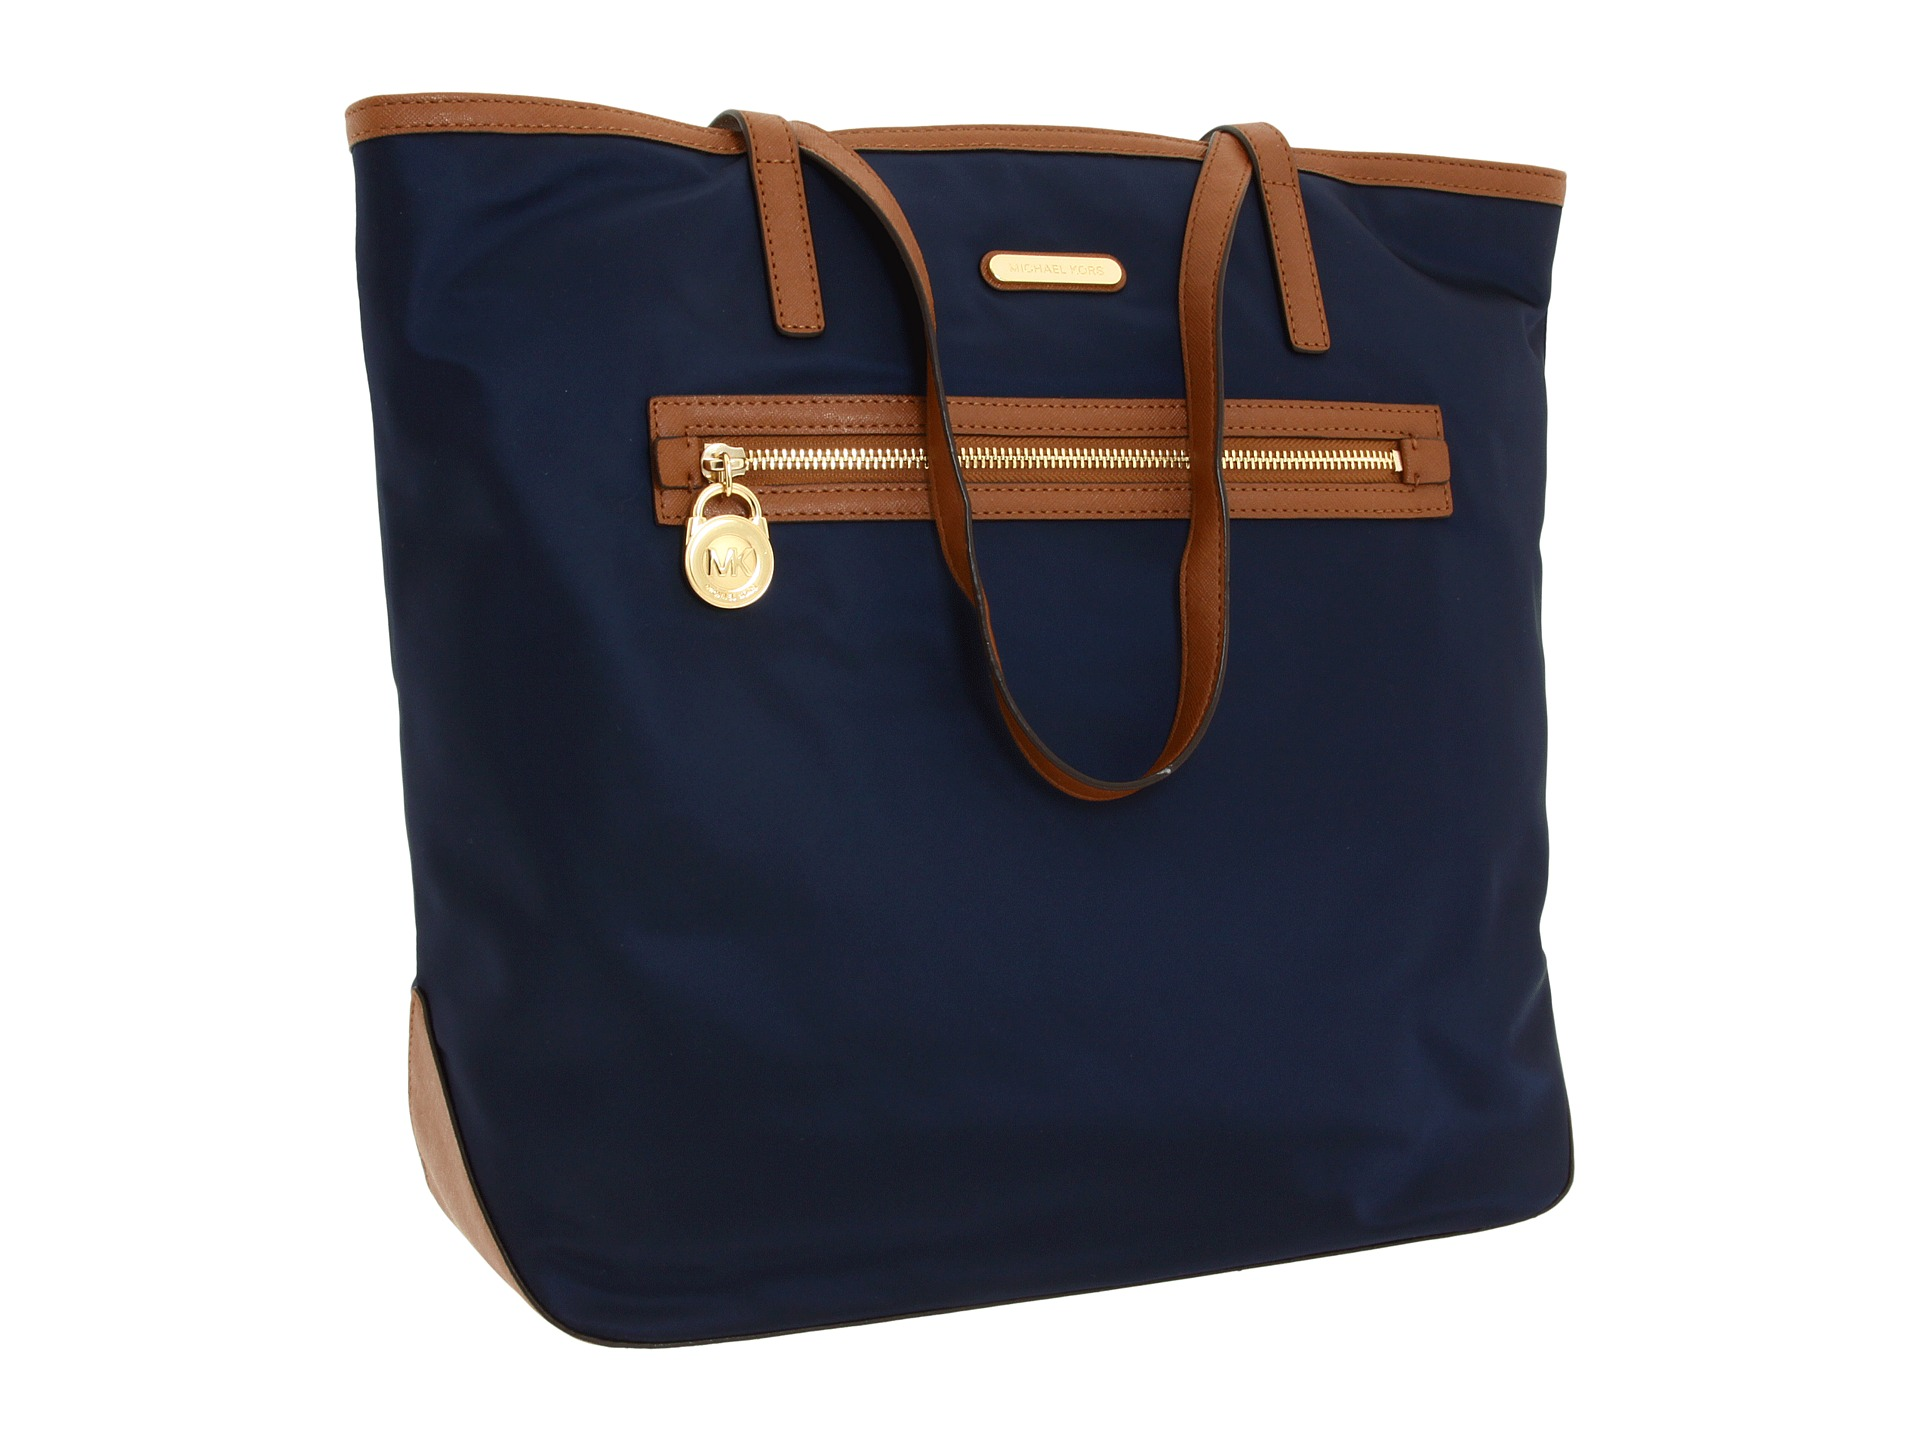 1ed847865340 BOLSA de MICHAEL KORS KEMPTON LARGE NORTH SOUTH TOTE modelo Navy ...